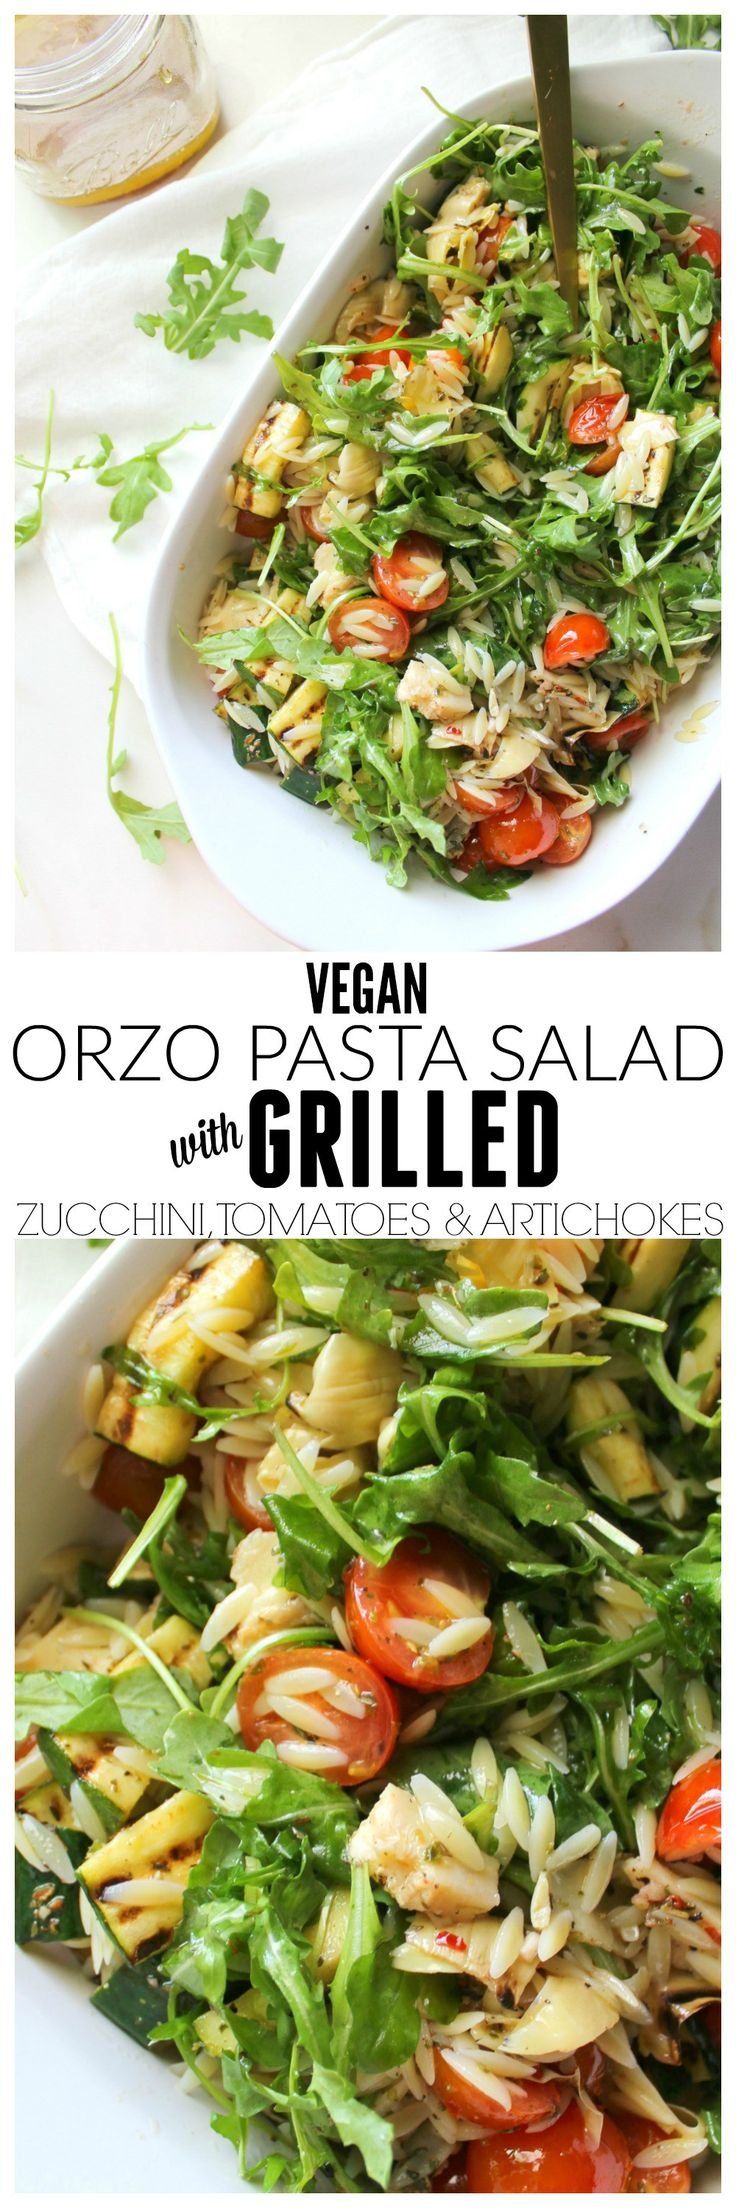 salad with grilled veggies vegan orzo pasta salad with grilled veggies ...